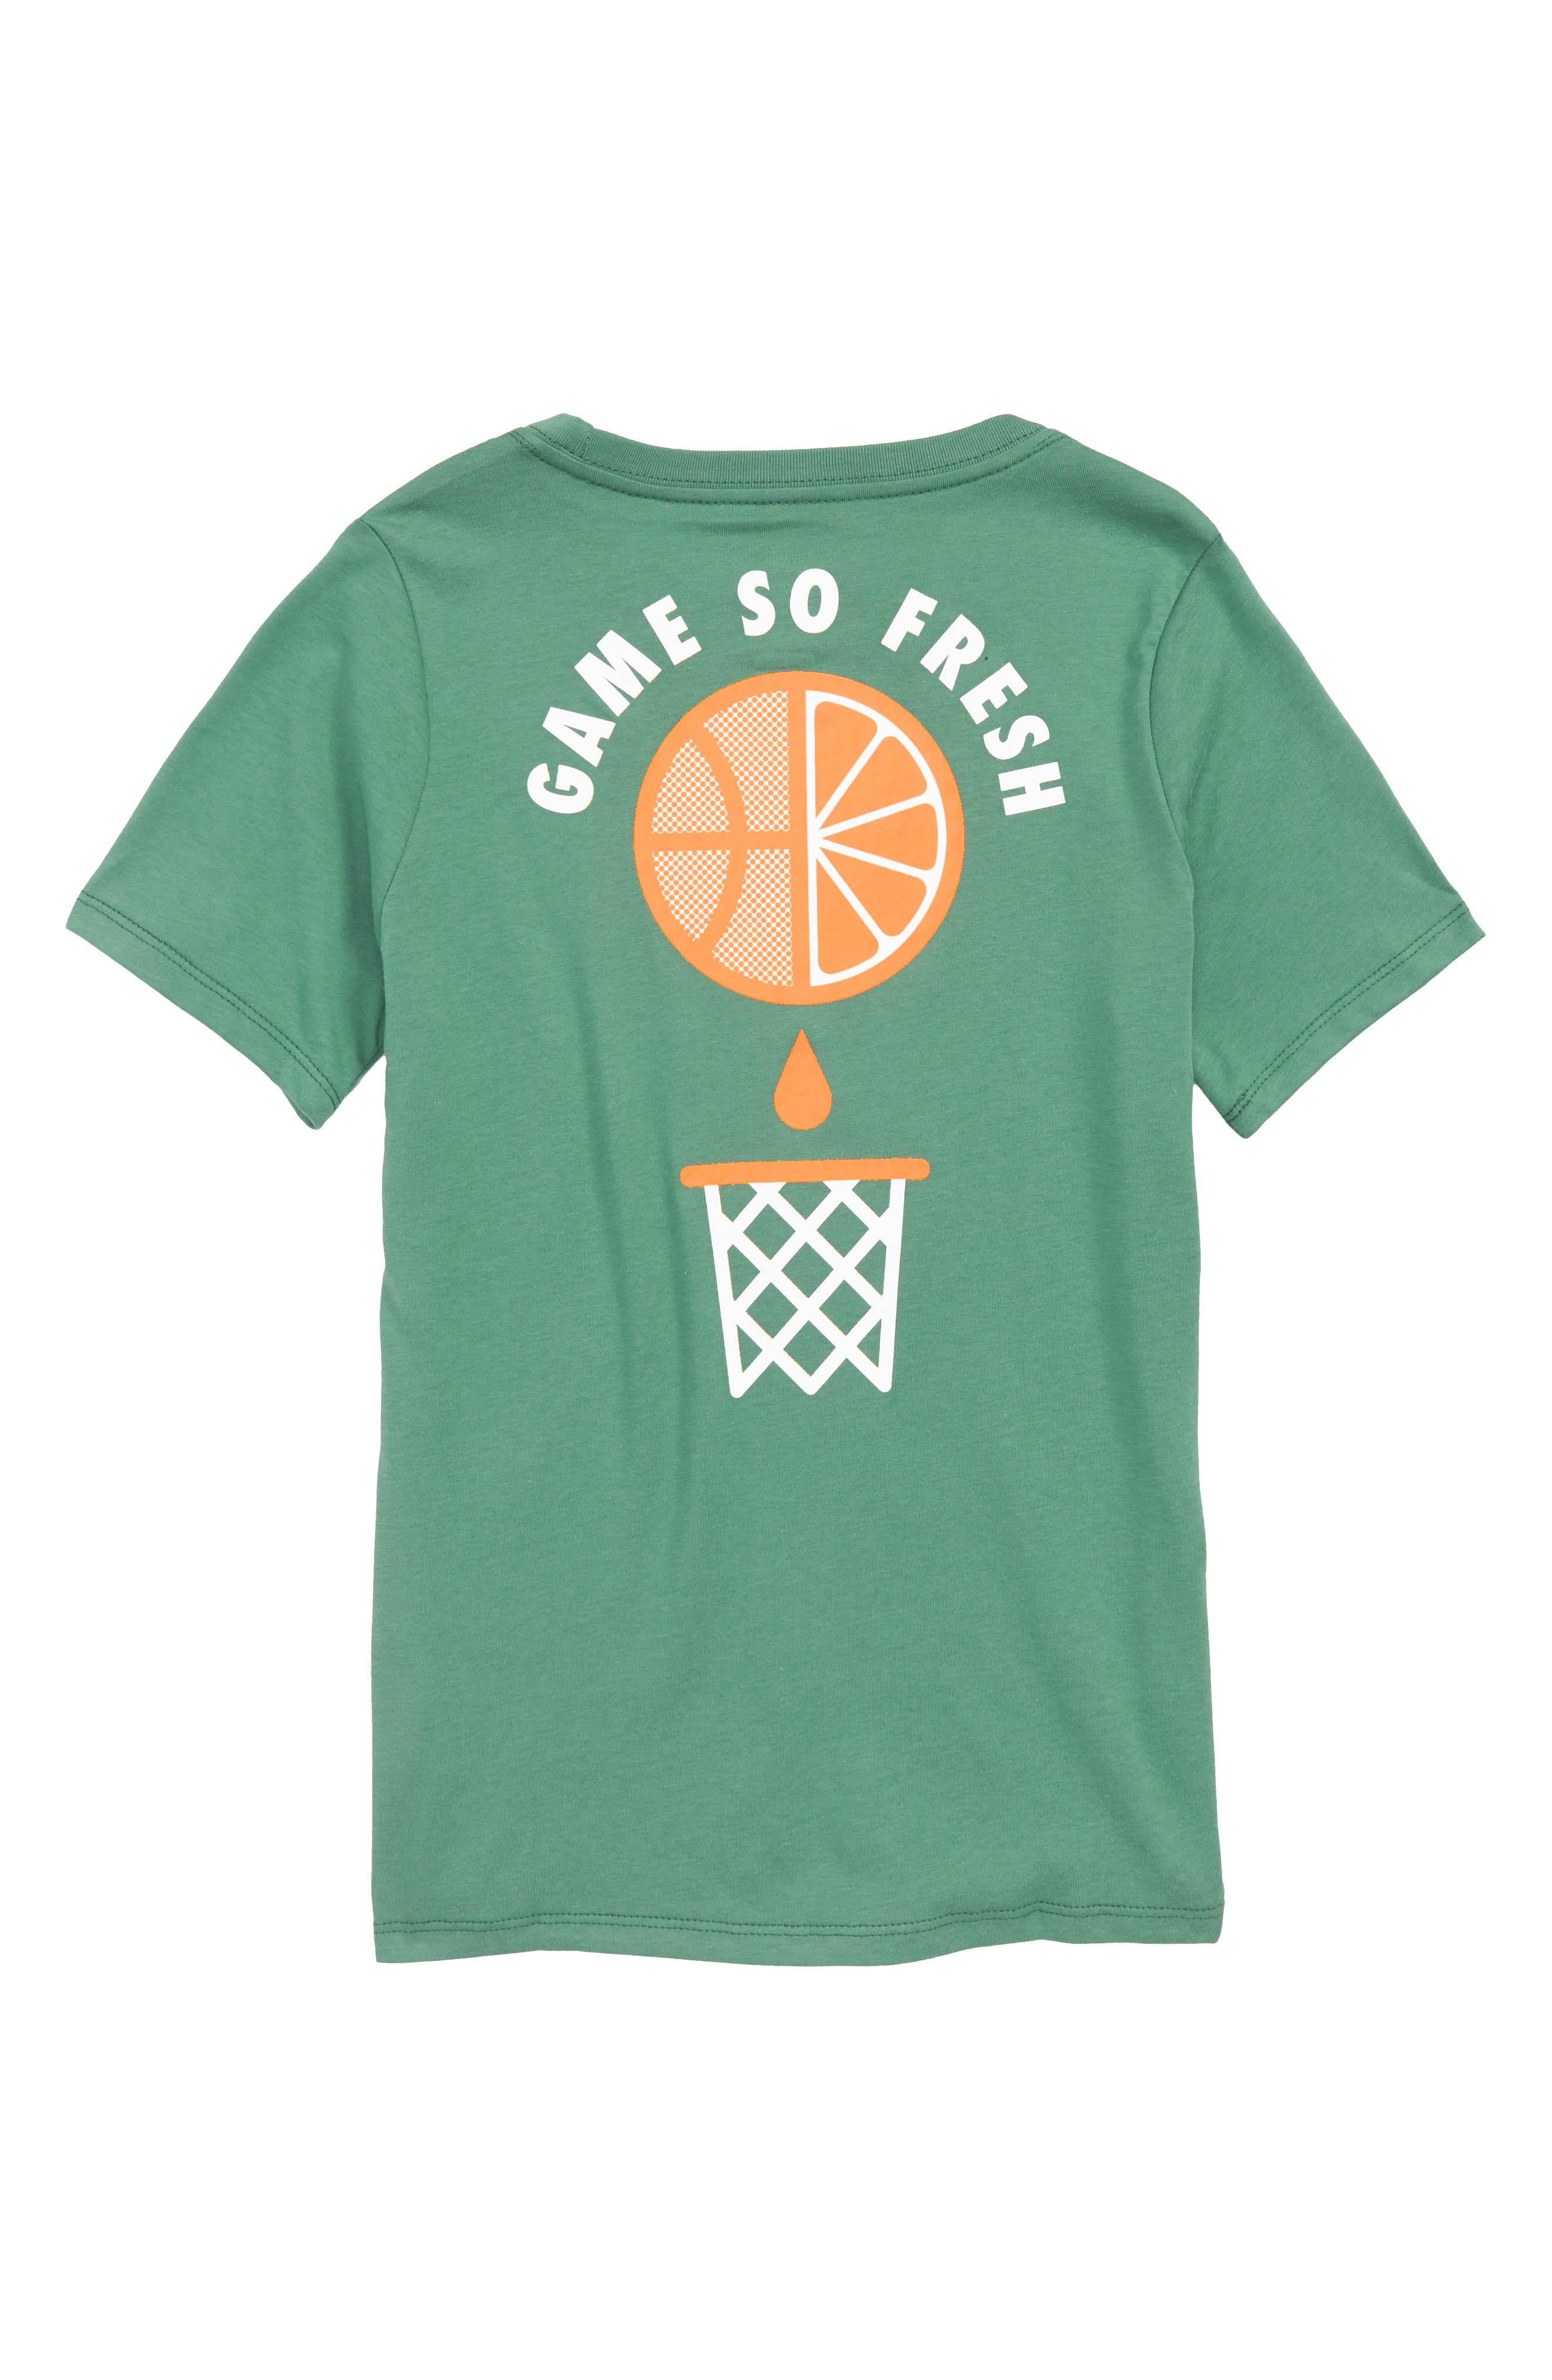 Dry Game So Fresh Graphic T-Shirt,                             Alternate thumbnail 2, color,                             Green Noise